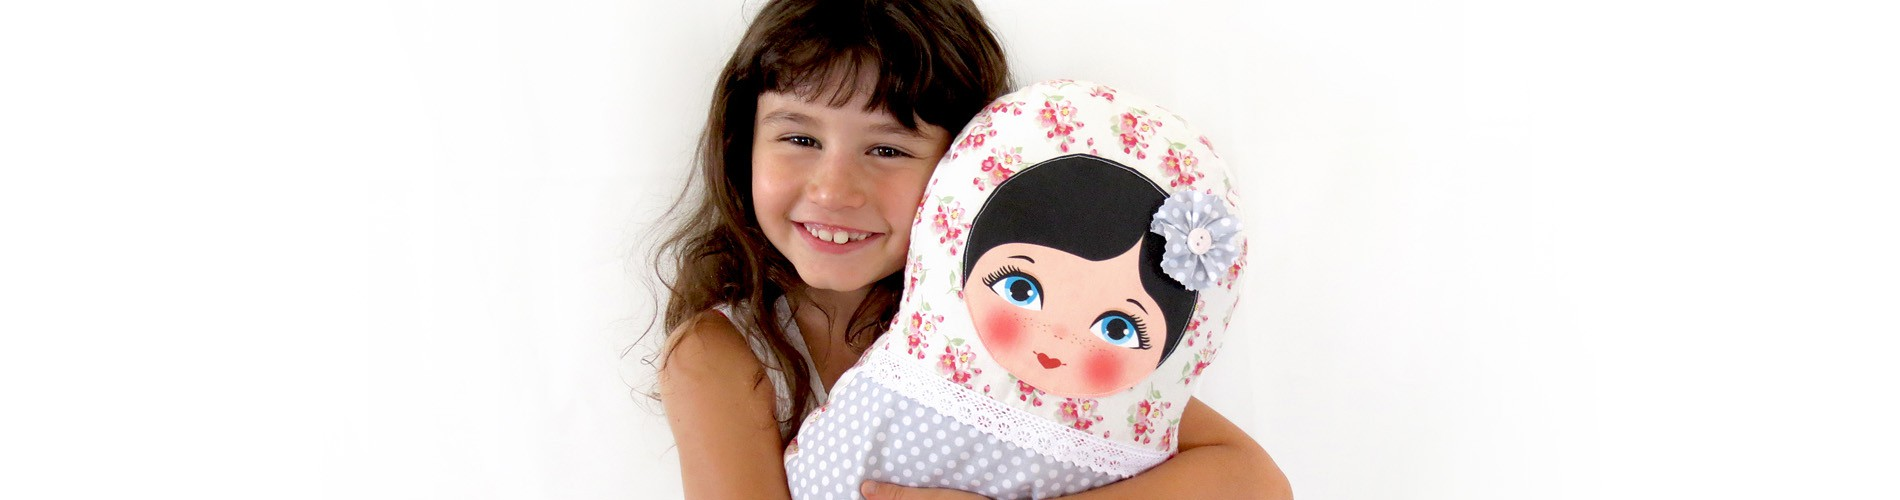 Toola dolls are soft , huggable, snuggable... girls just love them!